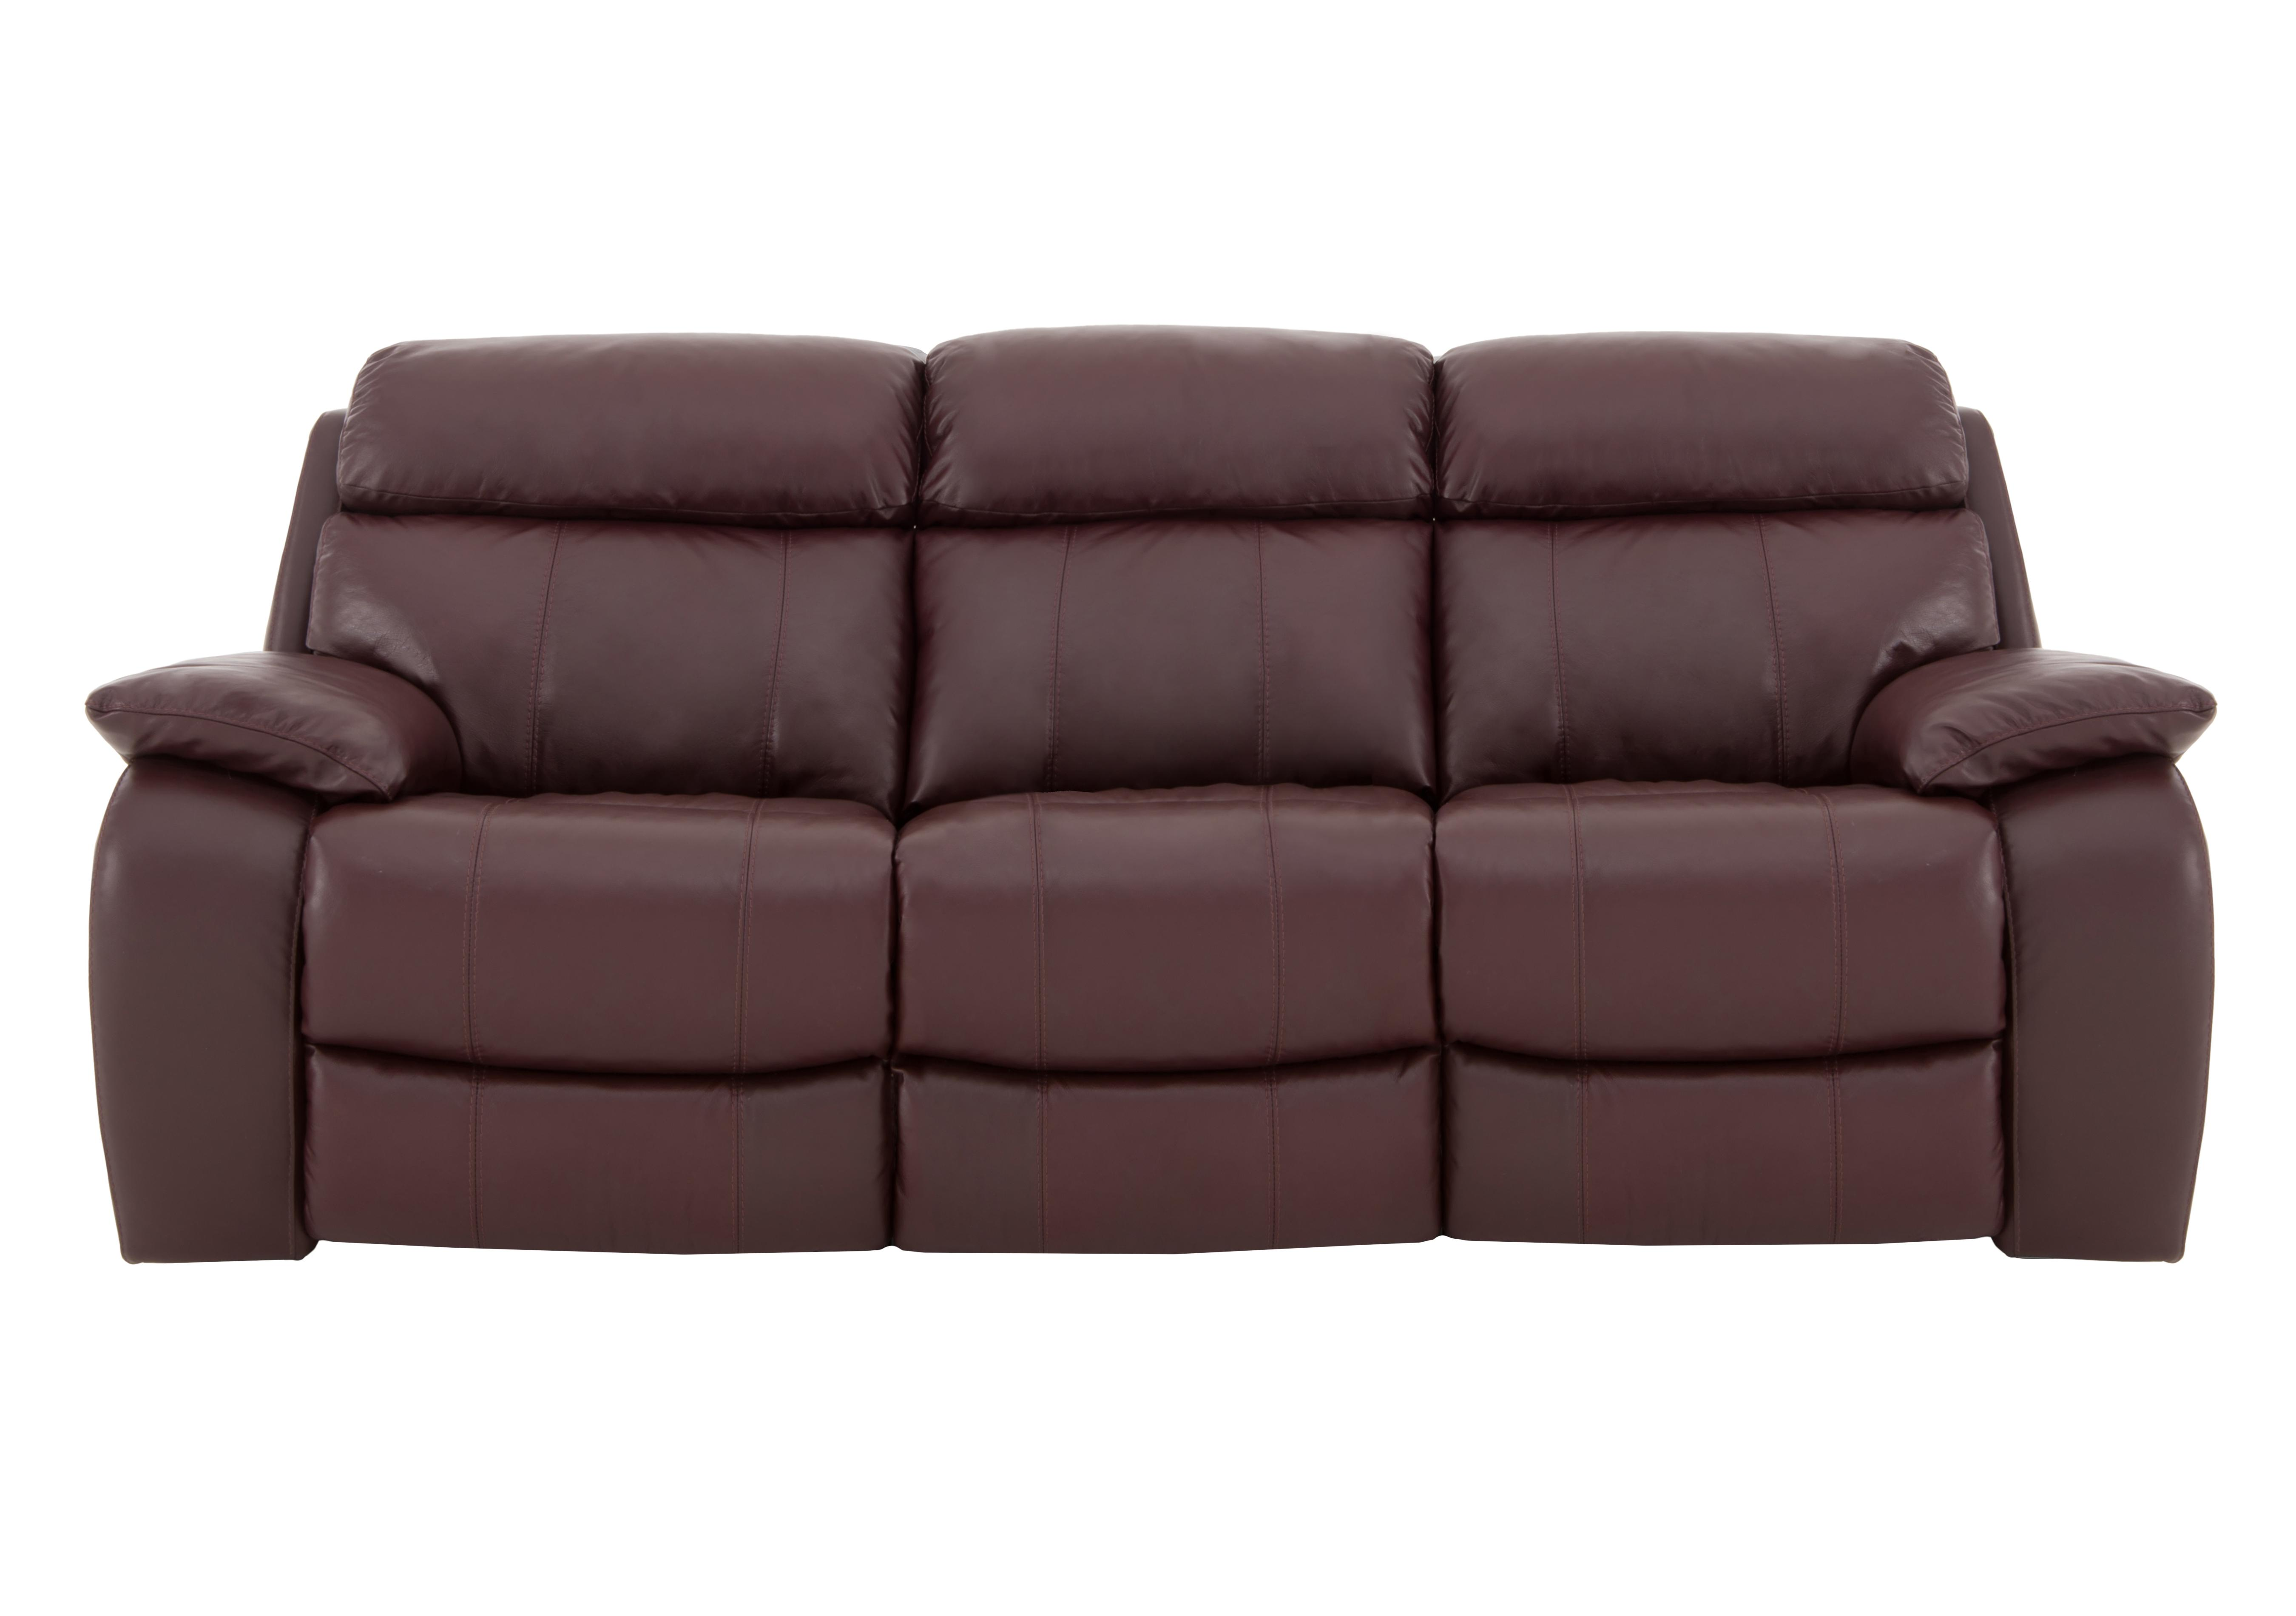 2 seater power recliner sofa simmons blackjack cocoa reclining and loveseat moreno 3 leather - world of ...